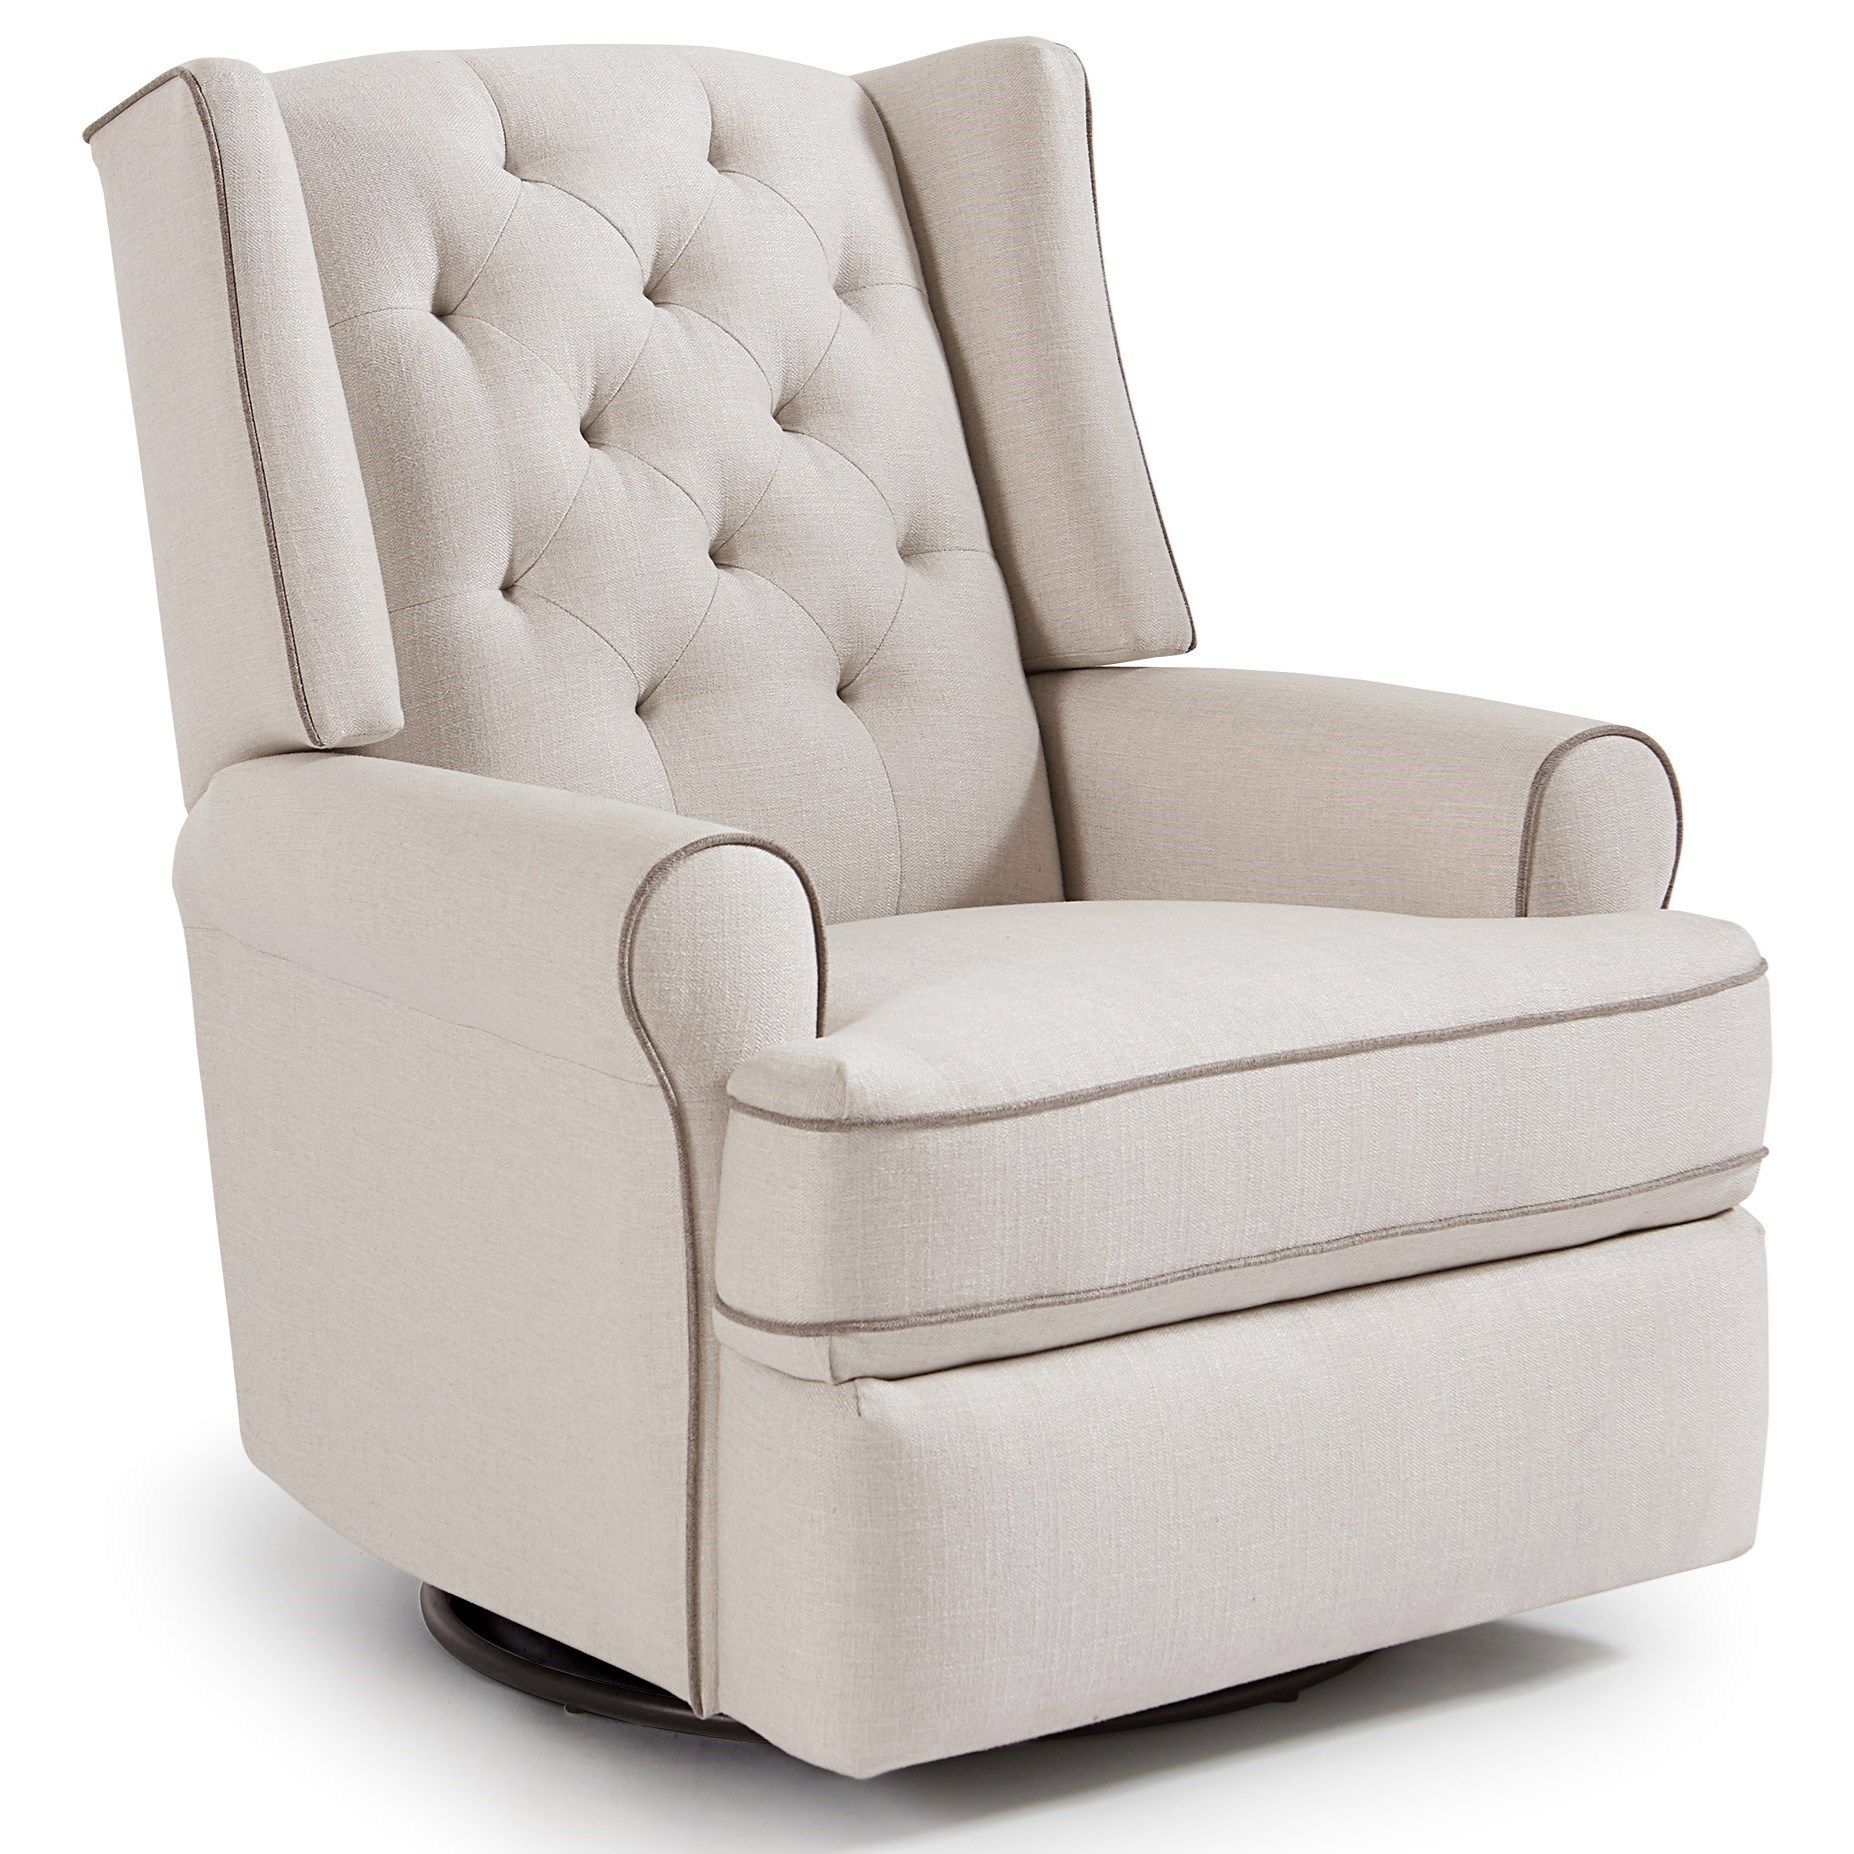 Kendra Swivel Glider Recliner by Best Home Furnishings at Miskelly